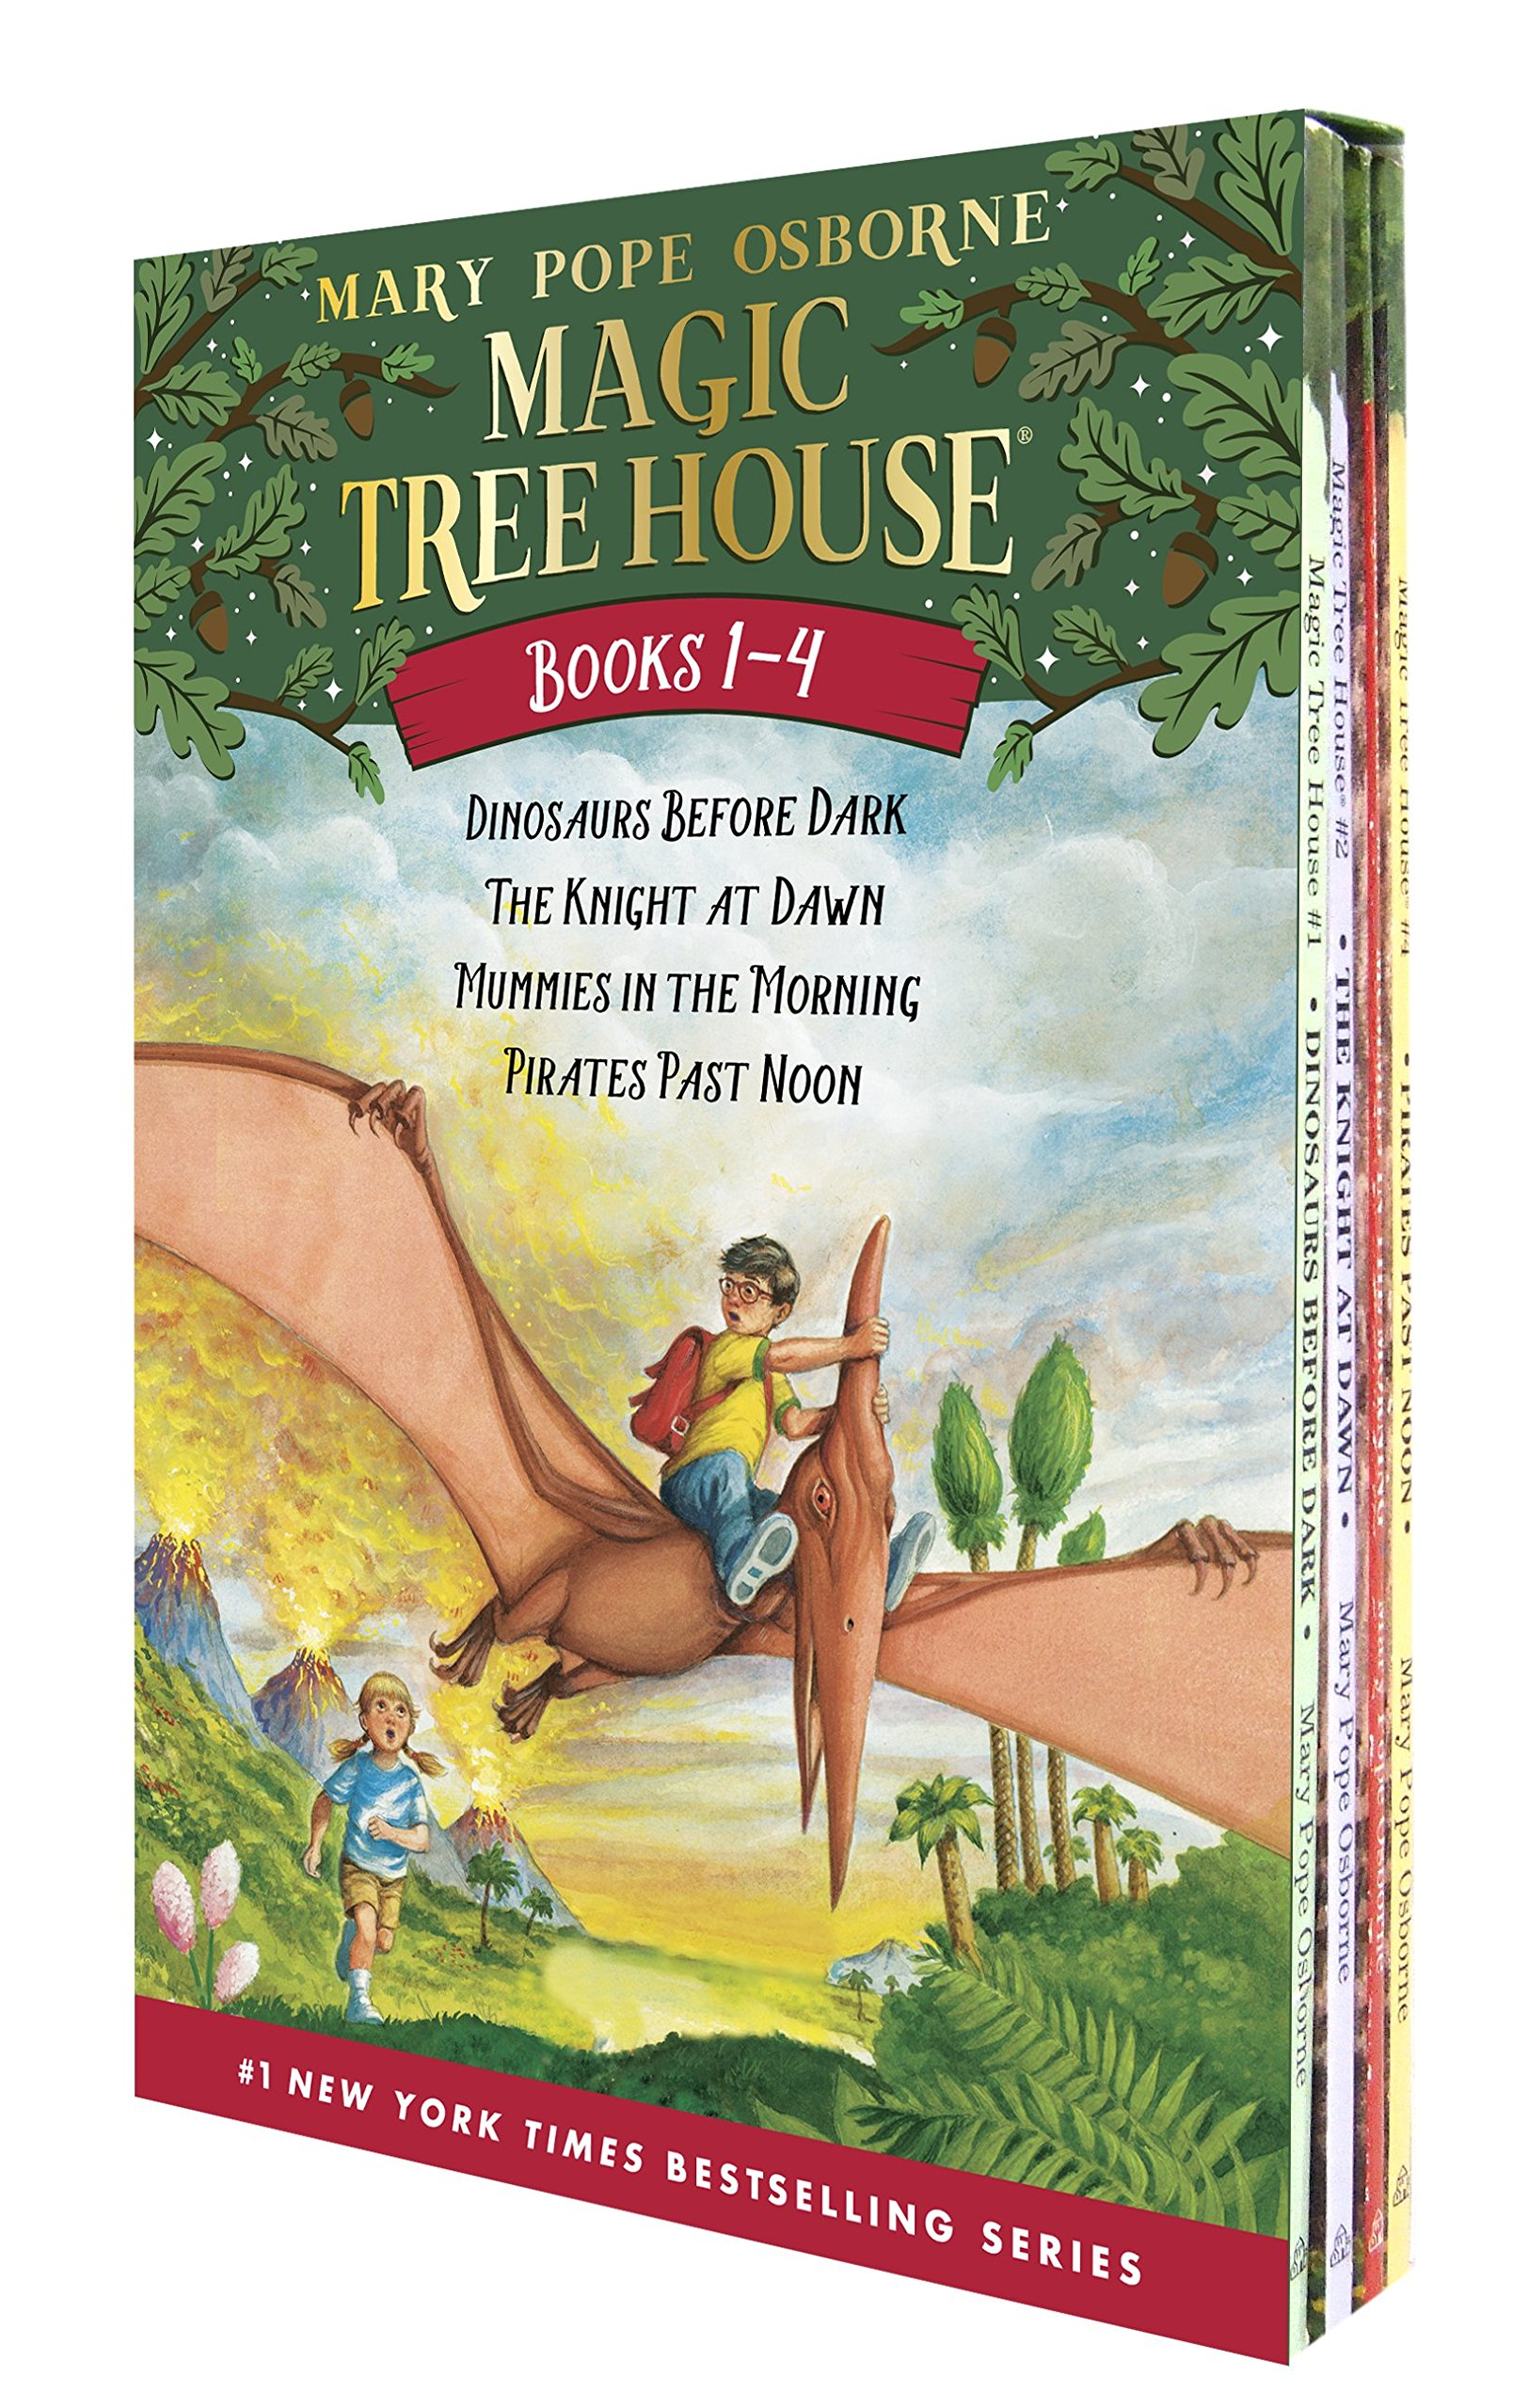 Magic Tree House Boxed Set, Books 1-4: Dinosaurs